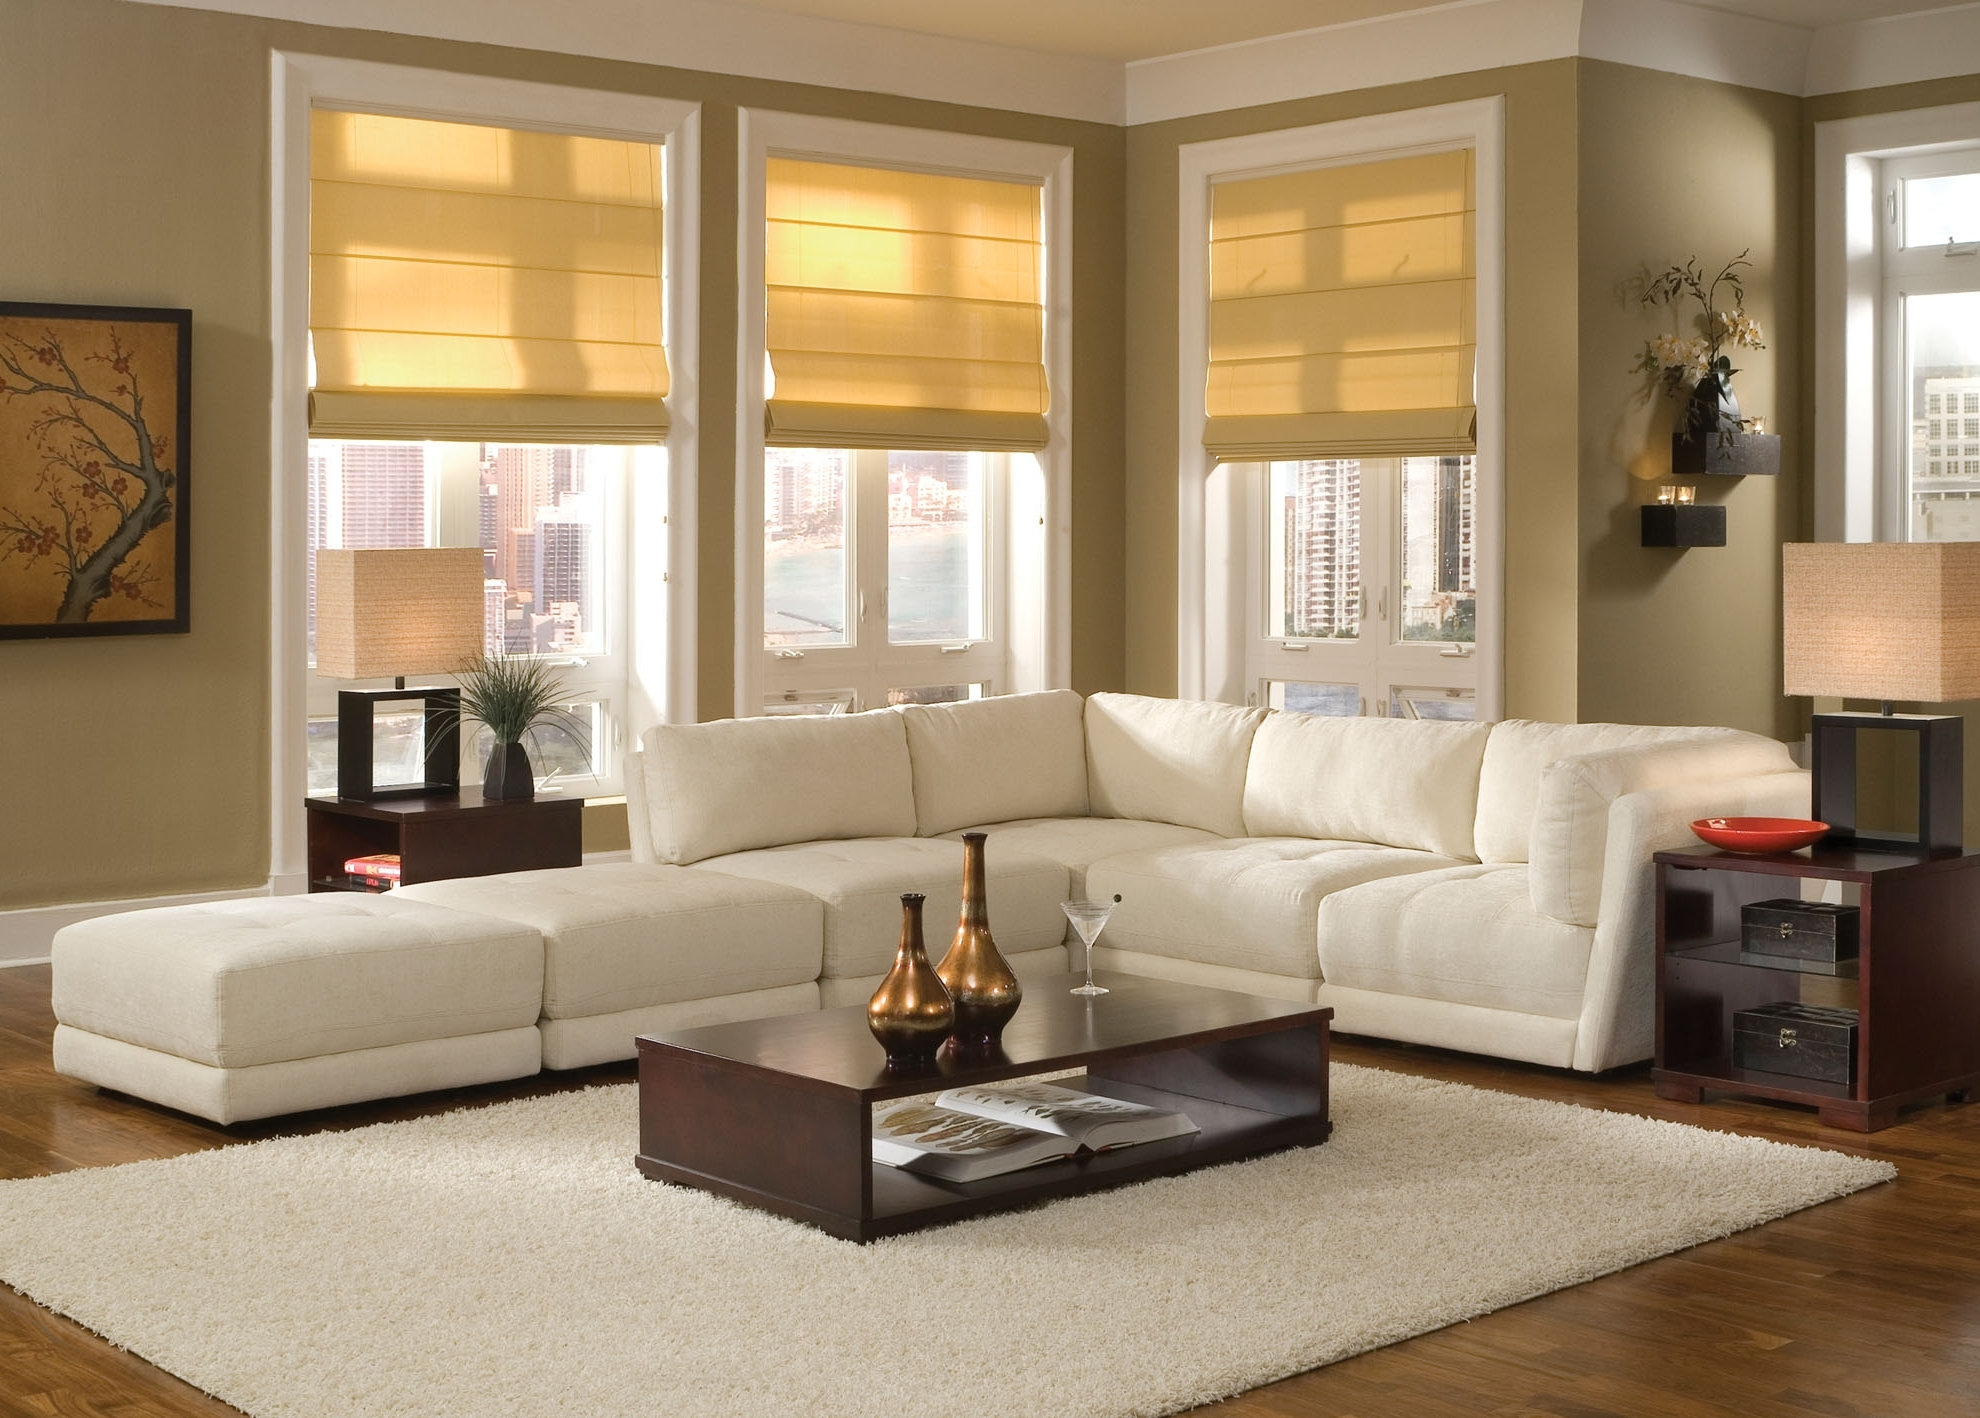 Trendy White Sofa Design Ideas & Pictures For Living Room Intended For Sectional Sofas Decorating (View 14 of 15)